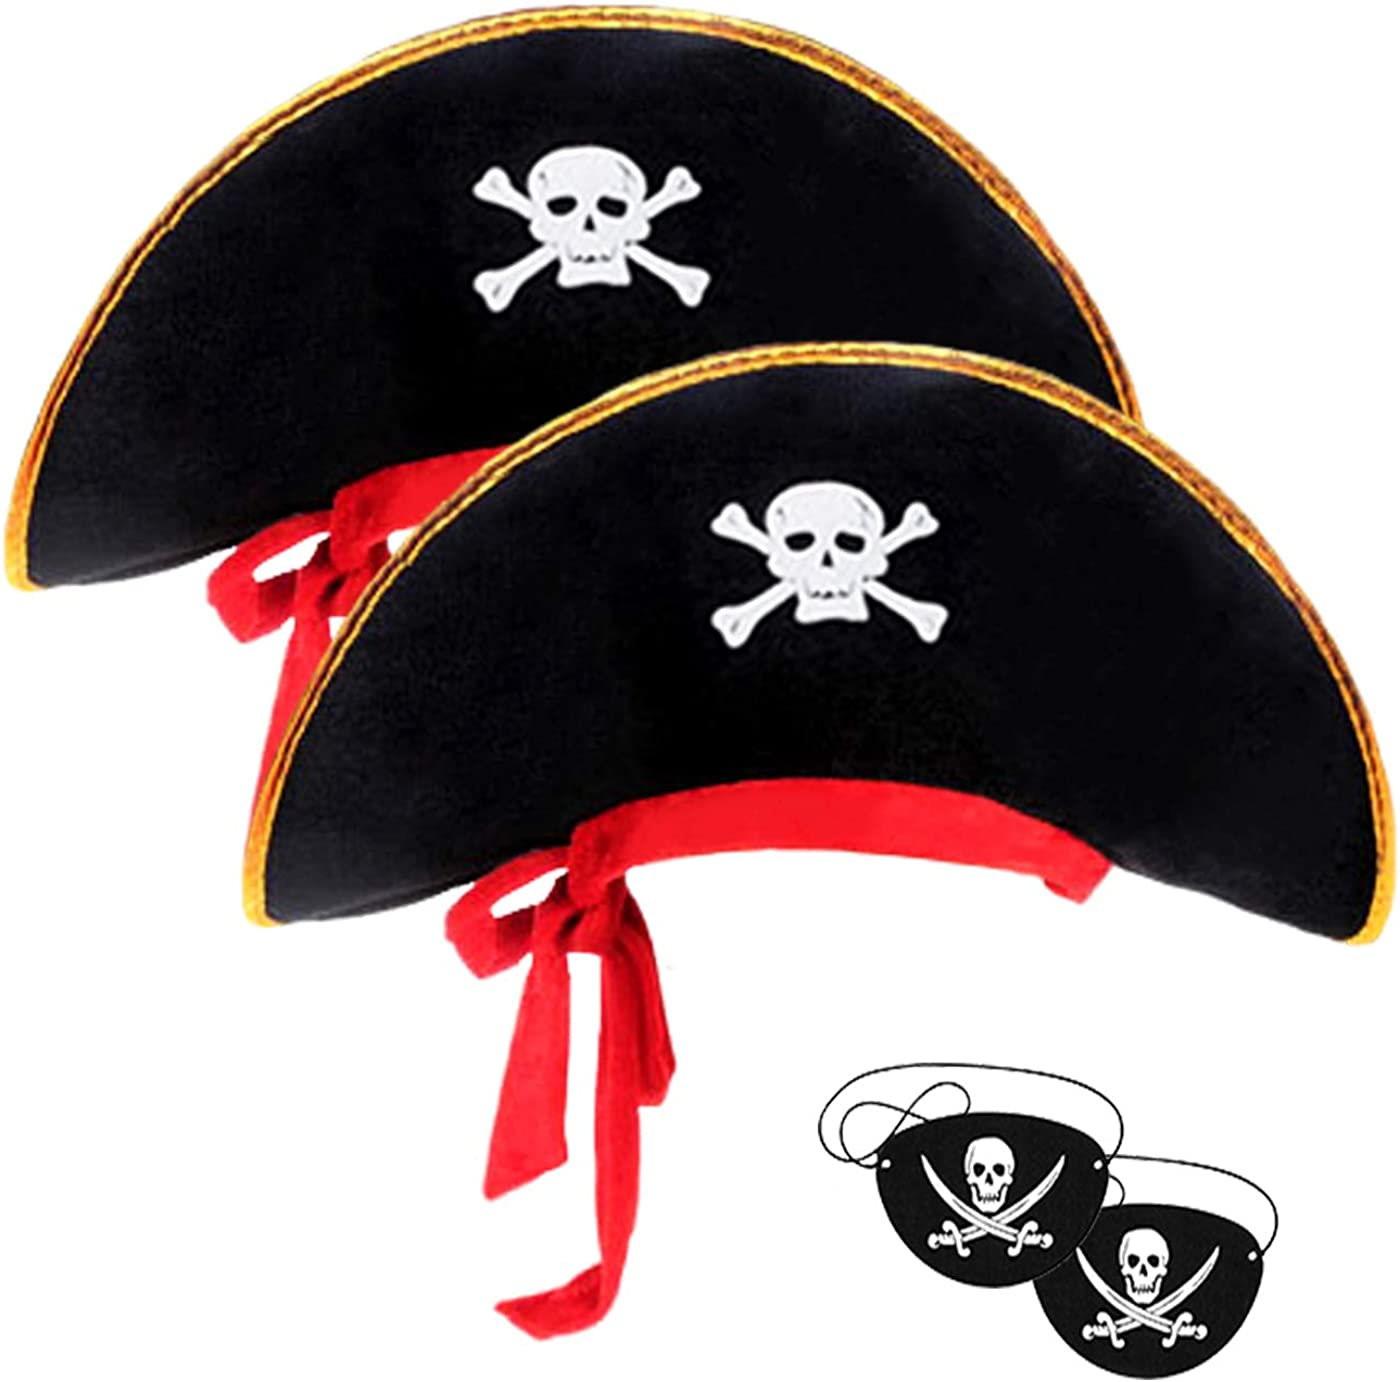 2pieces Skull Print Pirate Hat Caribbean Pirate Captain Hat Pirate Costume Accessories Pirate Decorations Cosplay Dress-up Theme Party Pirate Decor